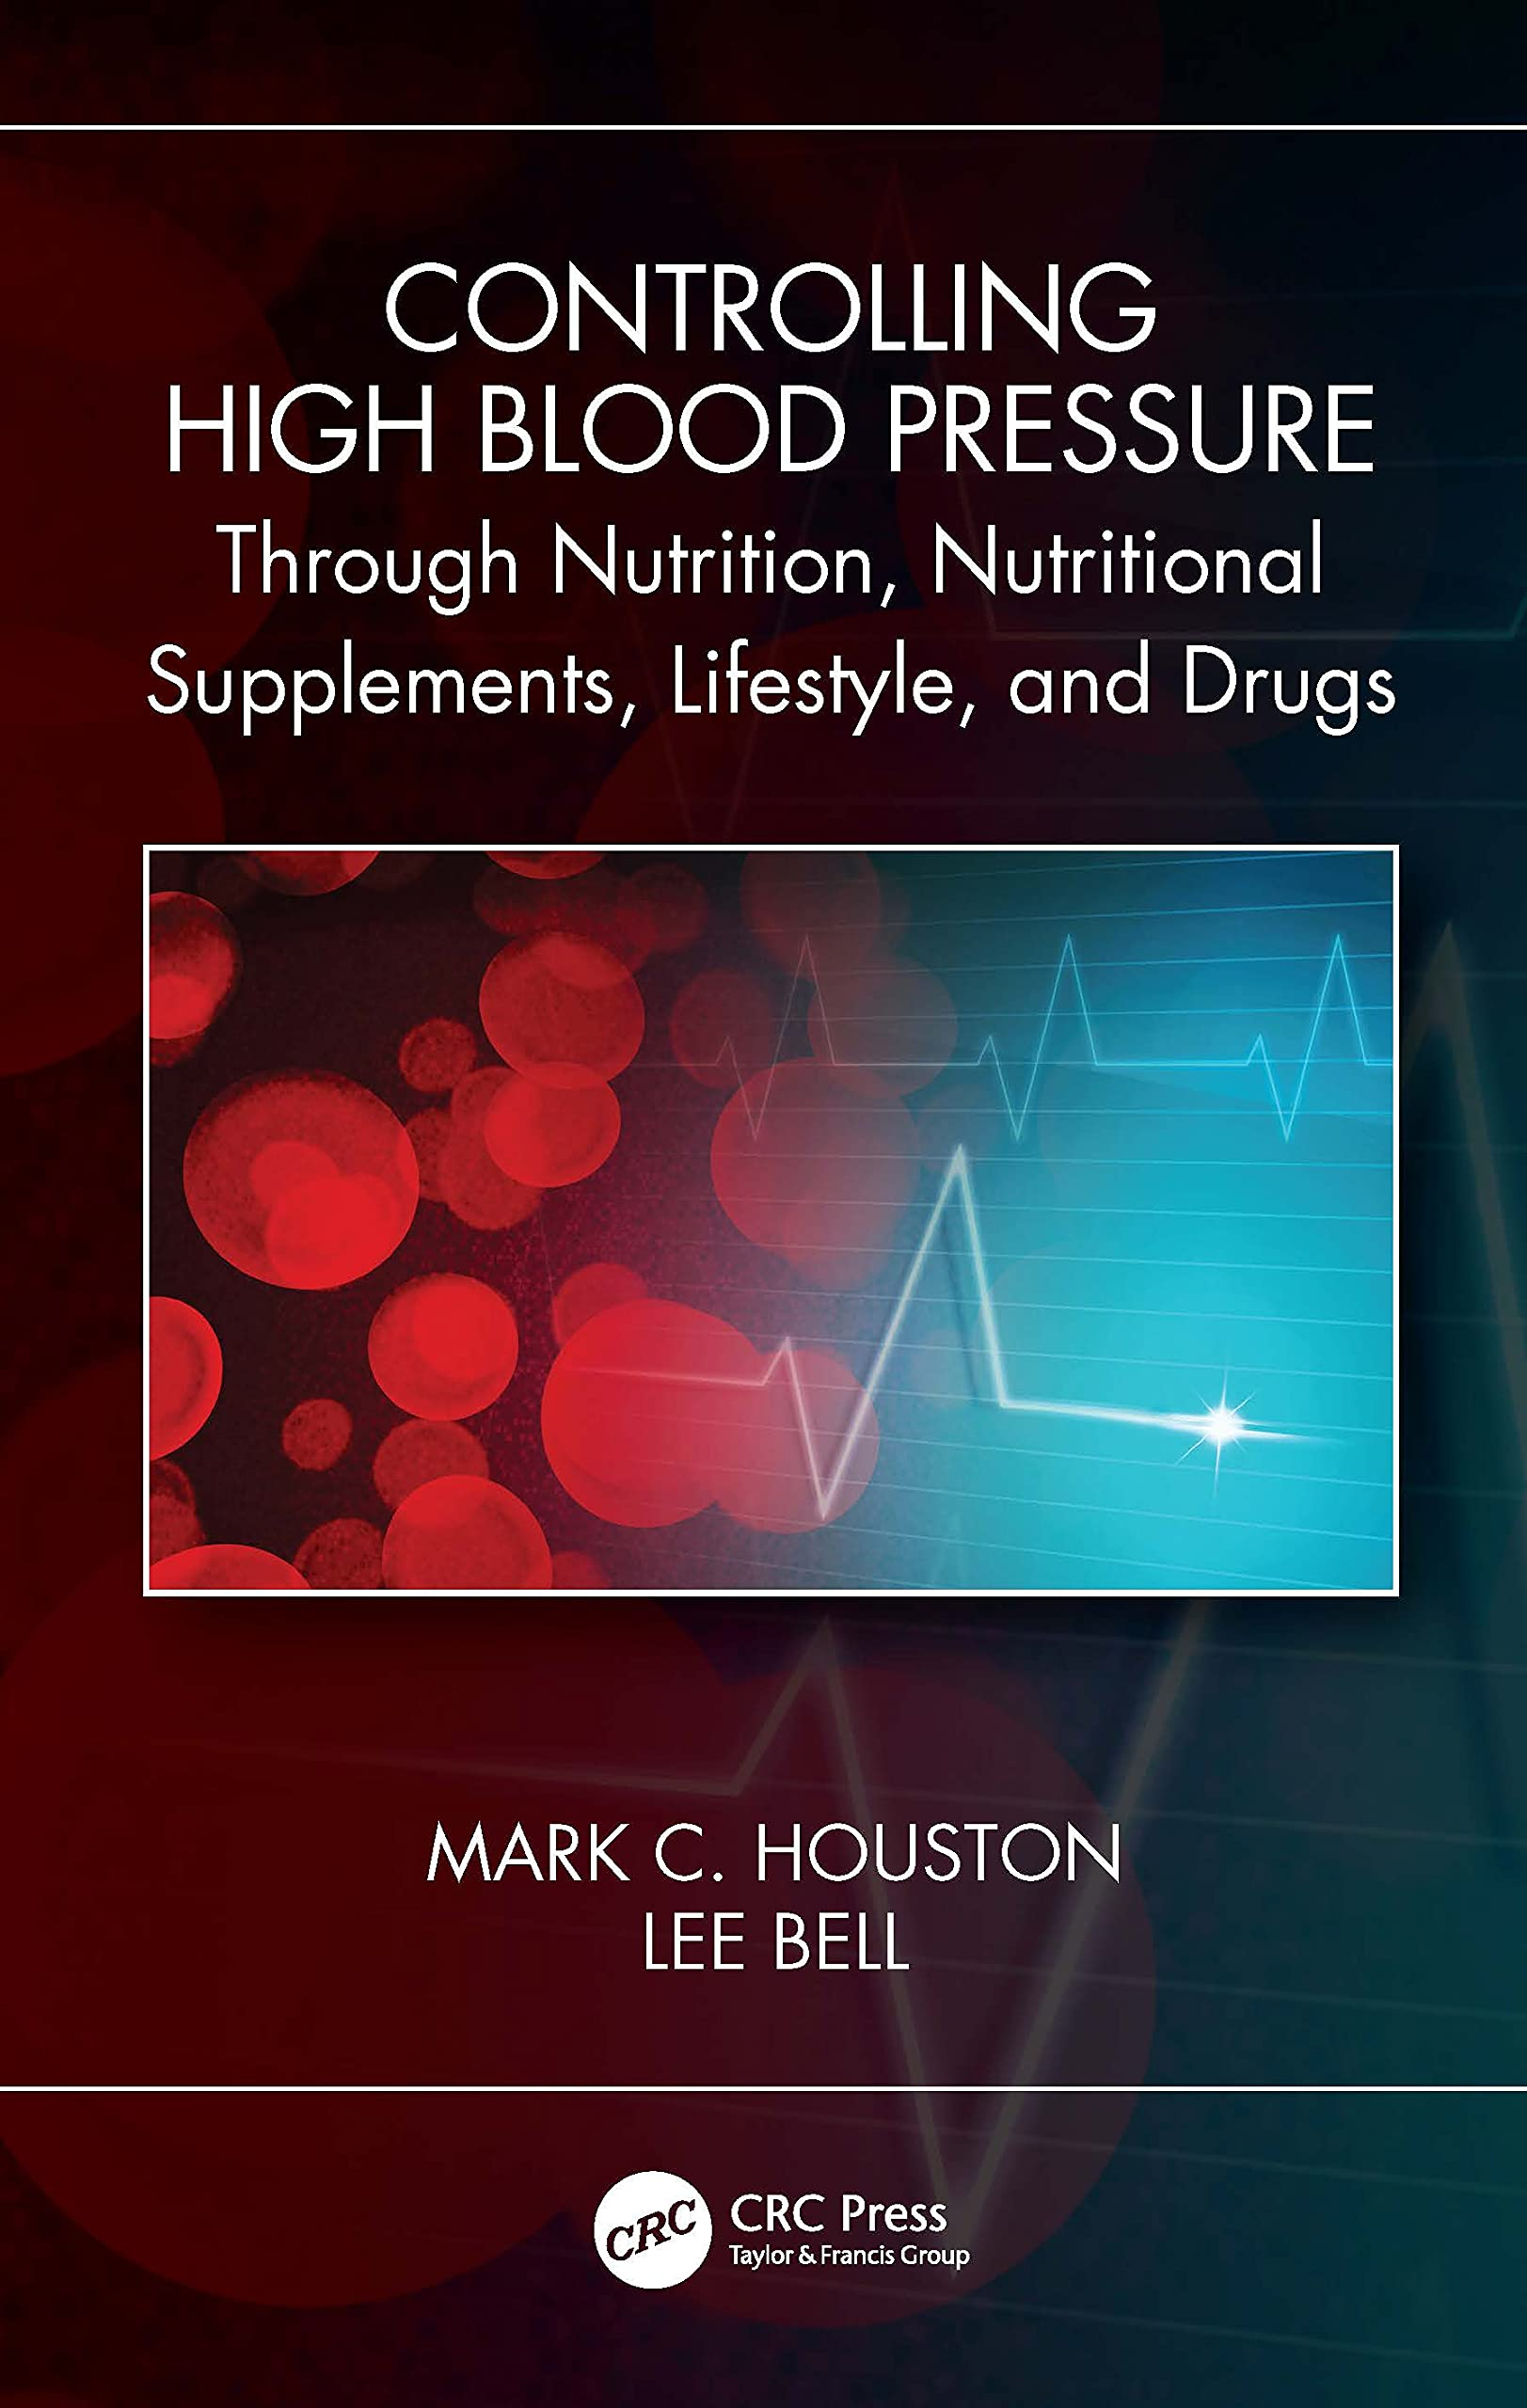 Controlling High Blood Pressure through Nutrition, Supplements, Lifestyle and Drugs